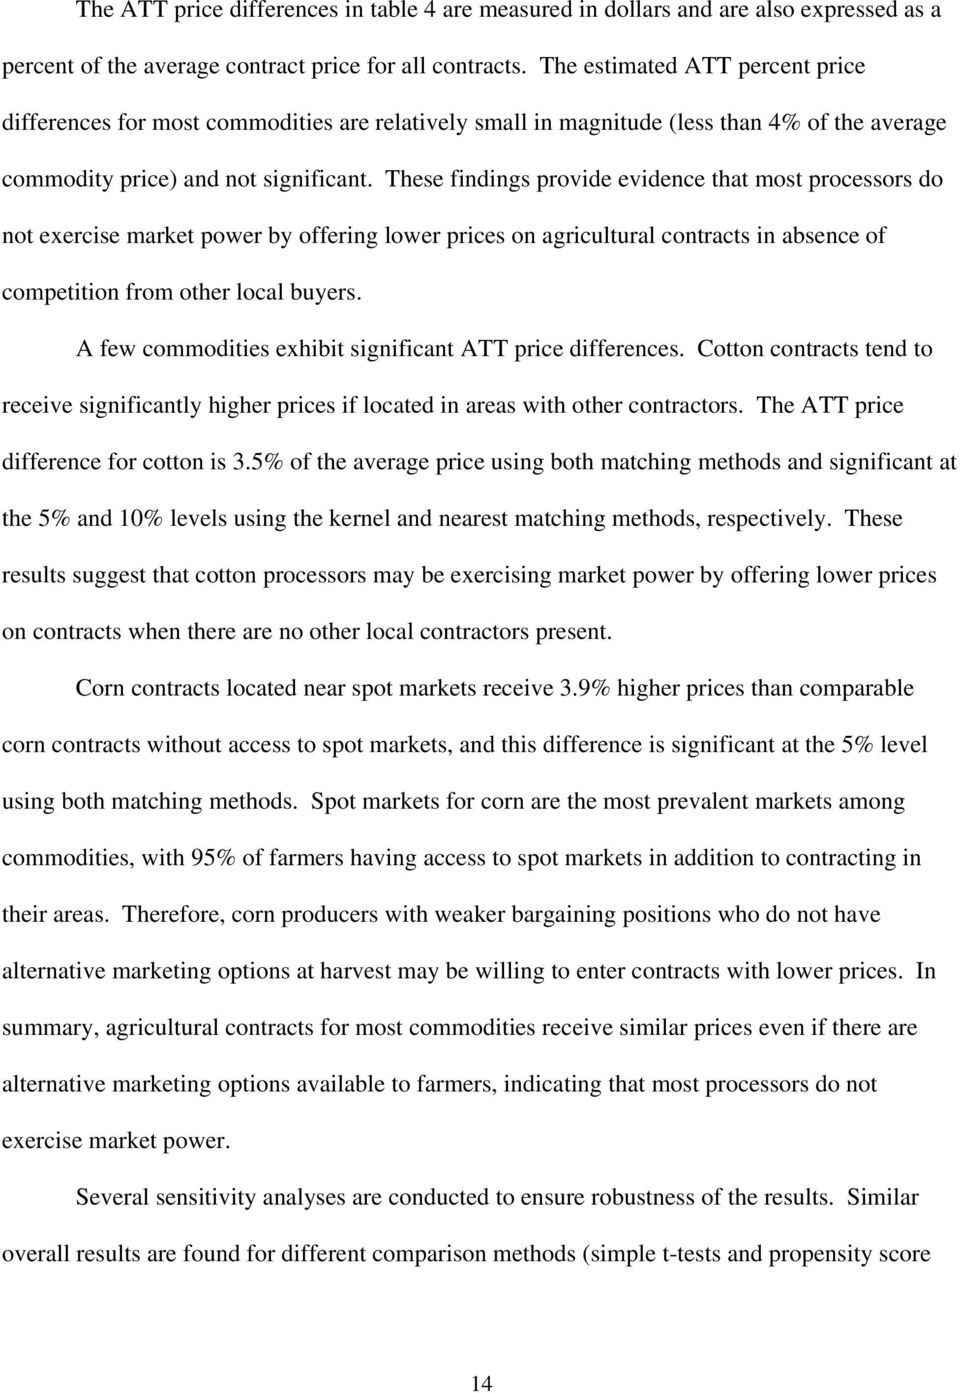 These findings provide evidence that most processors do not exercise market power by offering lower prices on agricultural contracts in absence of competition from other local buyers.